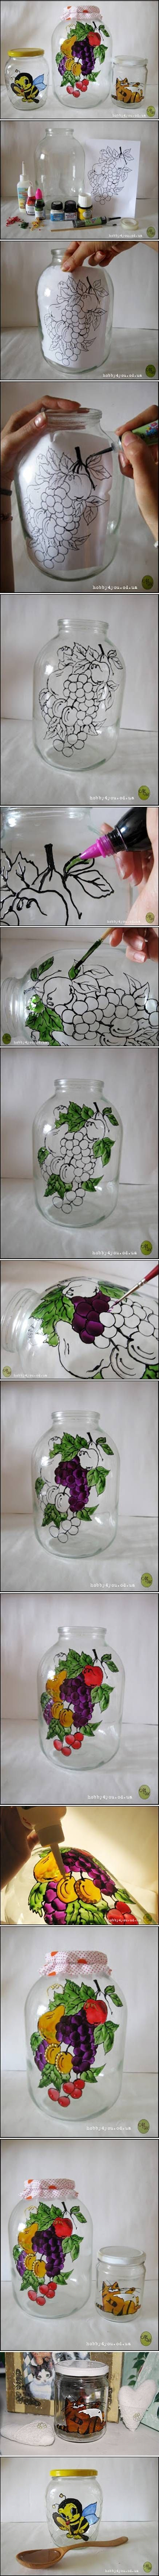 DIY Jar Art - craft ideas - easy decorations